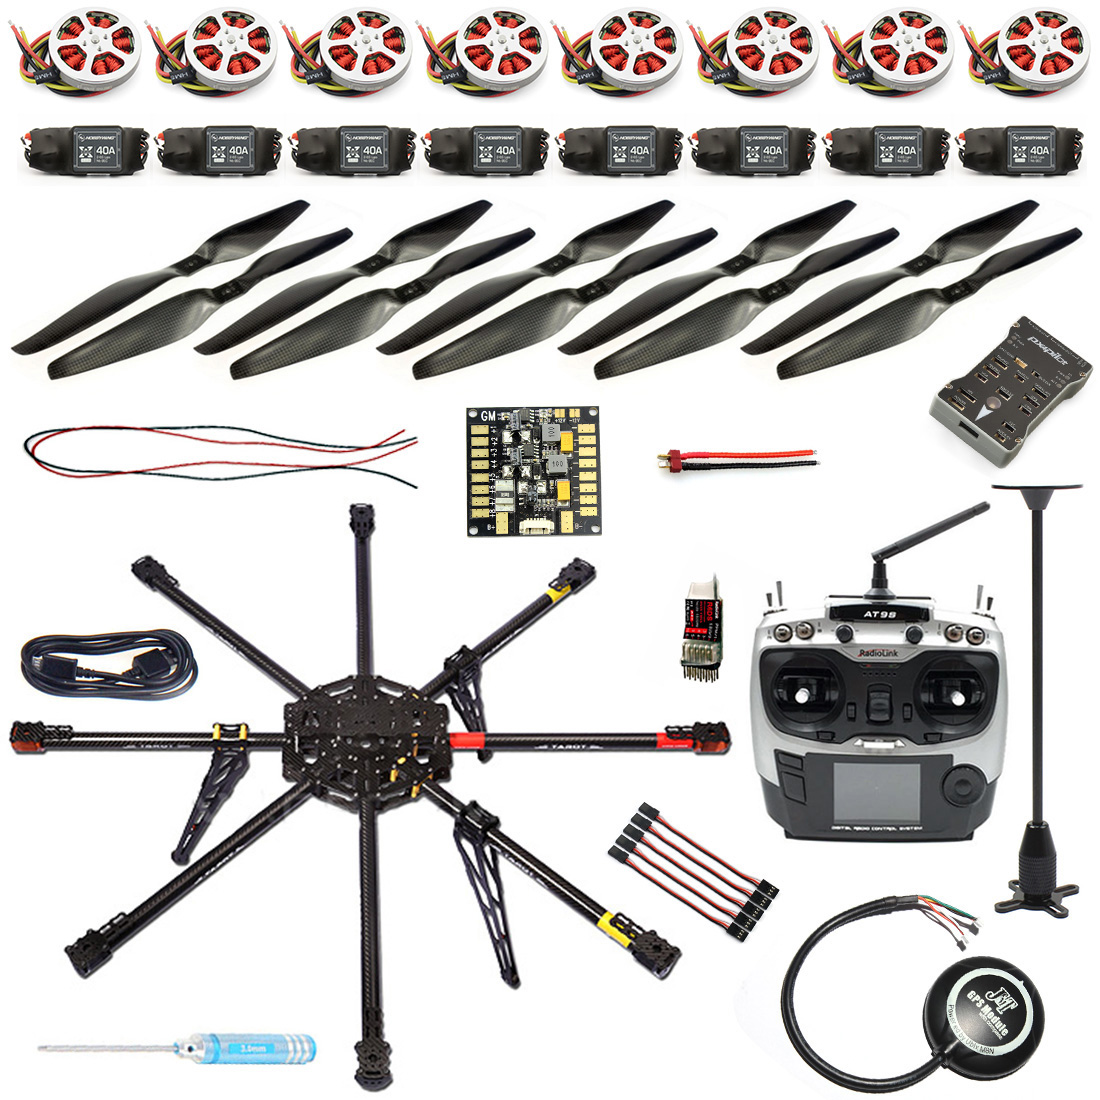 DIY GPS Drone Carbon Fiber 8-axis Aircraft PX4 2.4.8 Flight Controller APM2.6 GPS 350KV Motor 40A ESC Radiolink AT9 original naza gps for naza m v2 flight controller with antenna stand holder free shipping